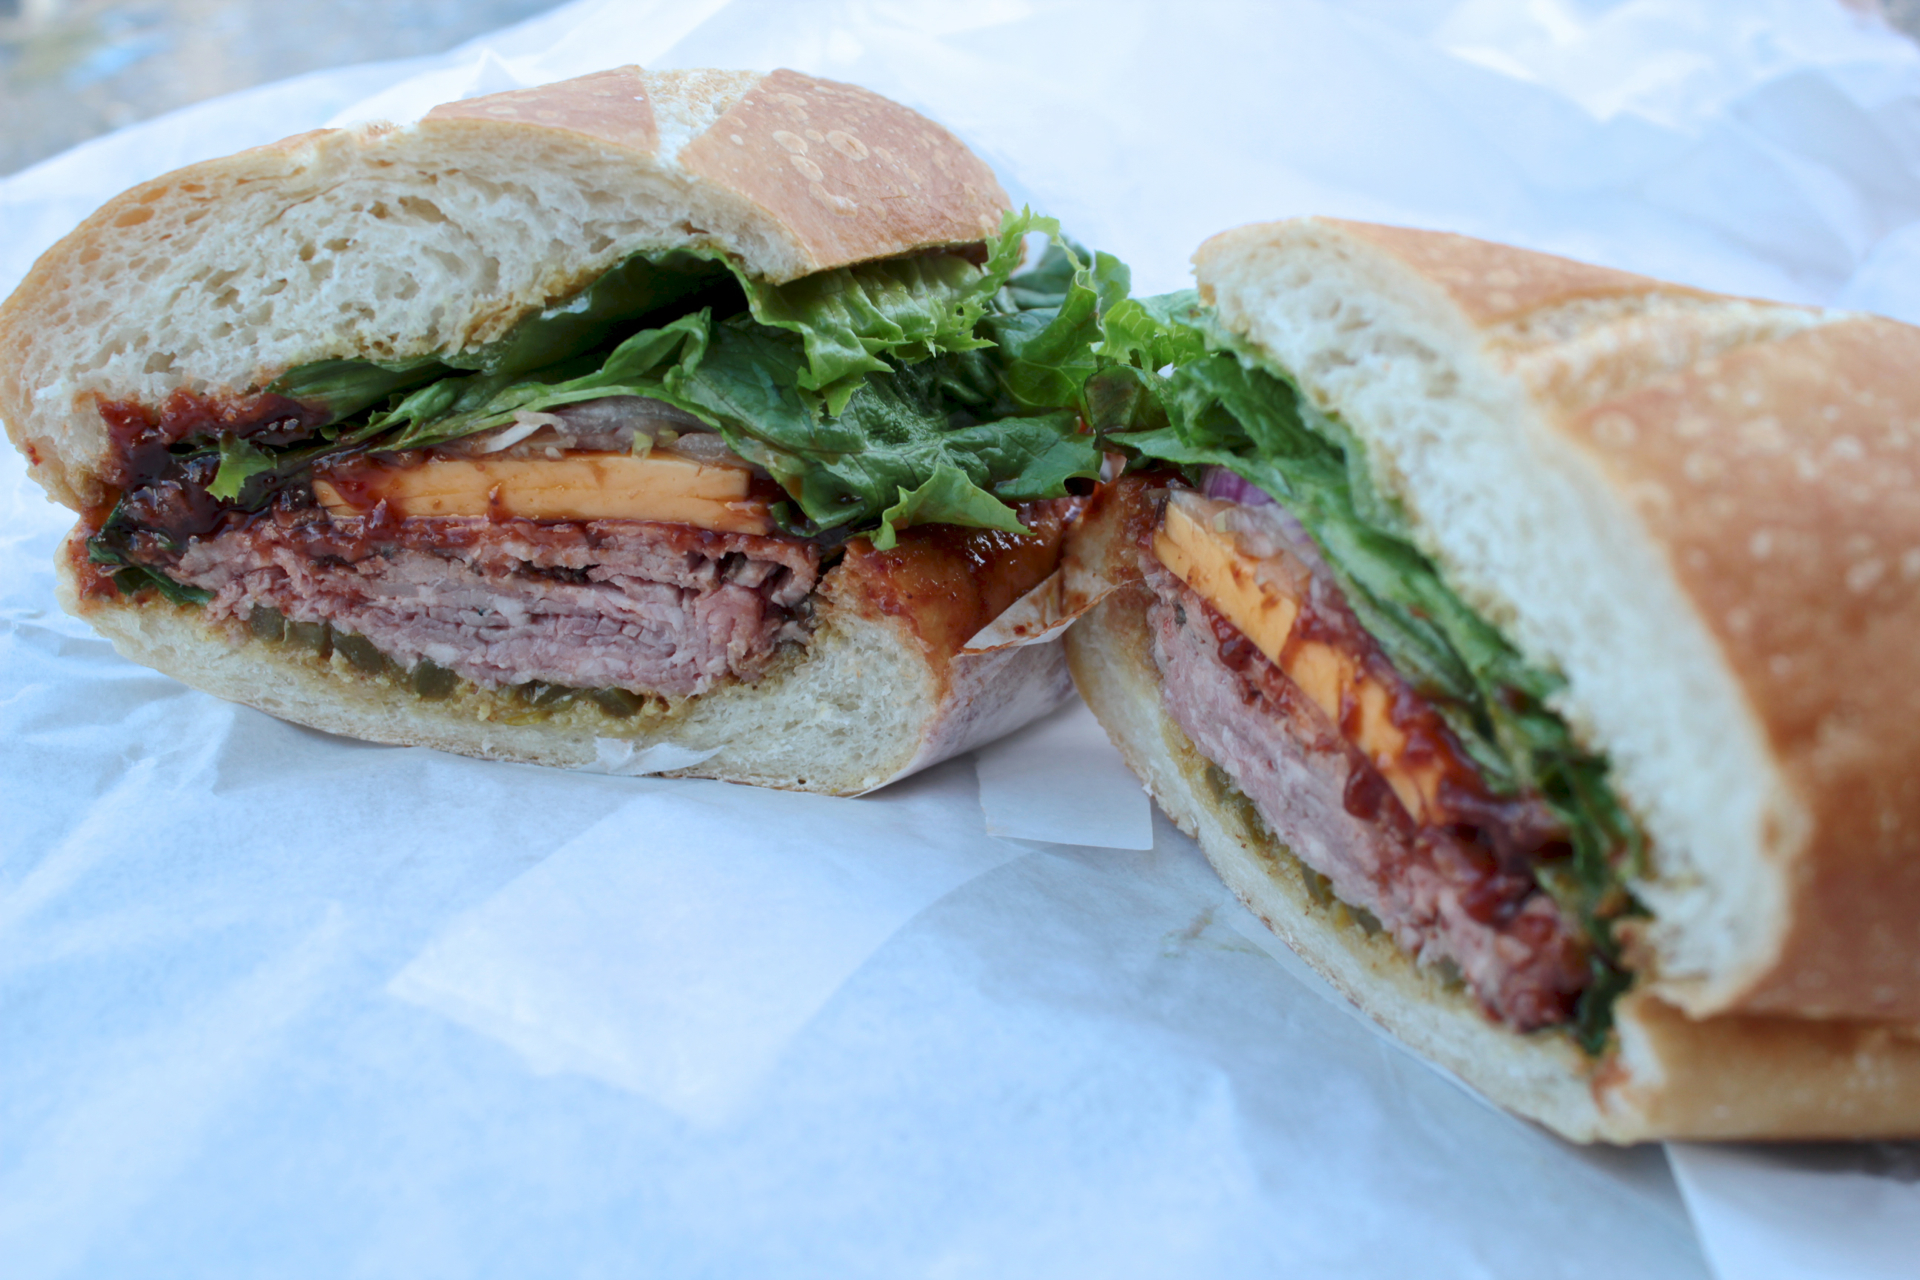 The Slow Burn sandwich features Tri-Tip with chipotle sauce, honey mustard and peppers.